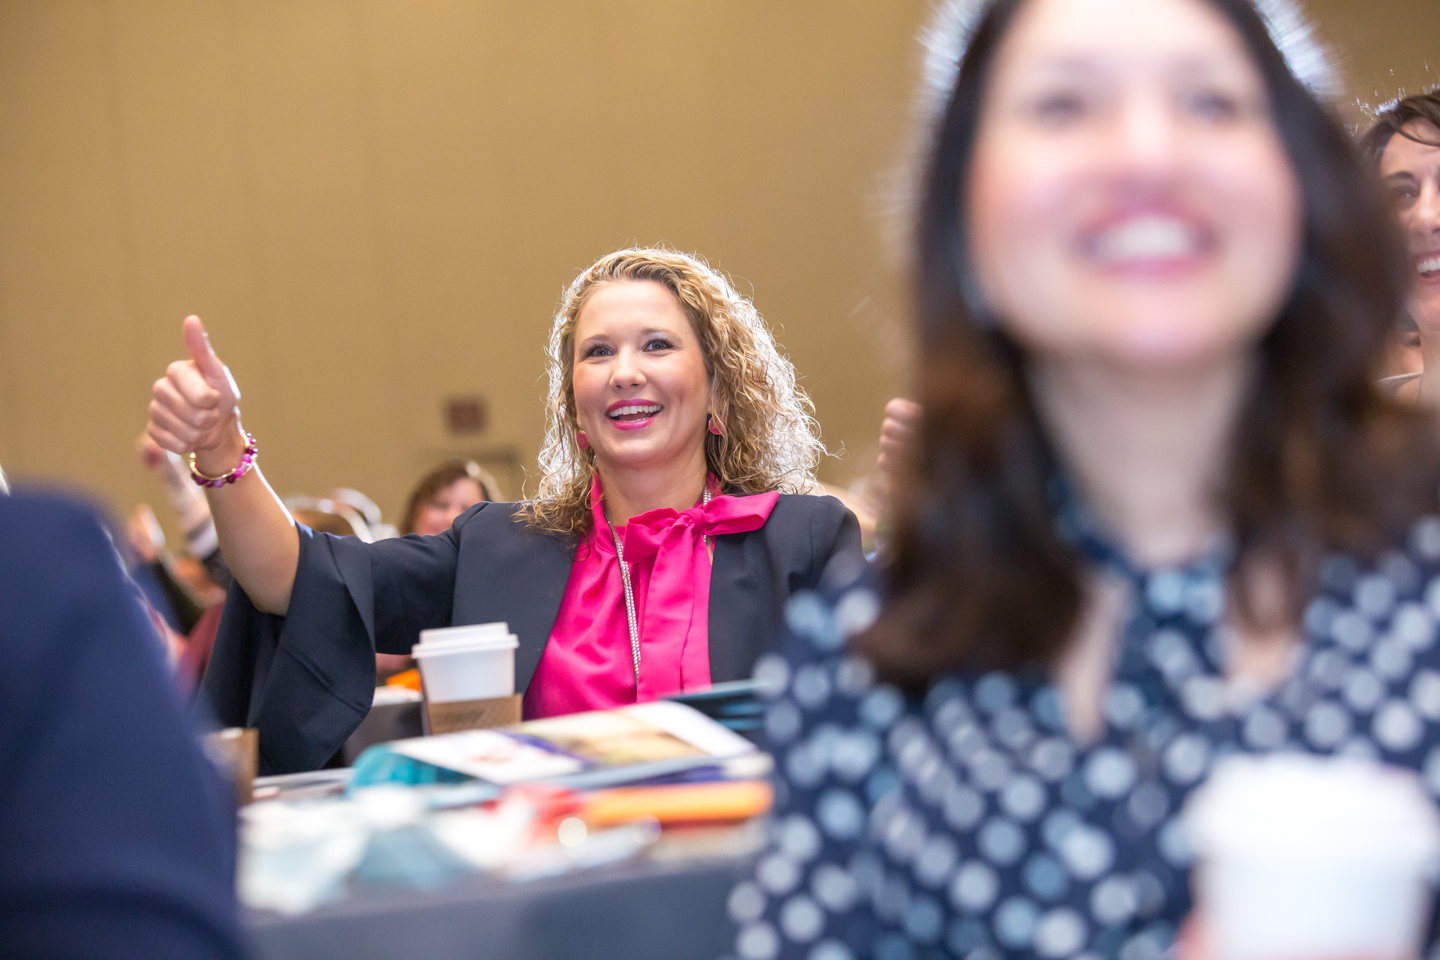 AAPPR-Conference-Expo-Professional-Event-Photography-Photographer-Orlando-session-breakout-15.jpg